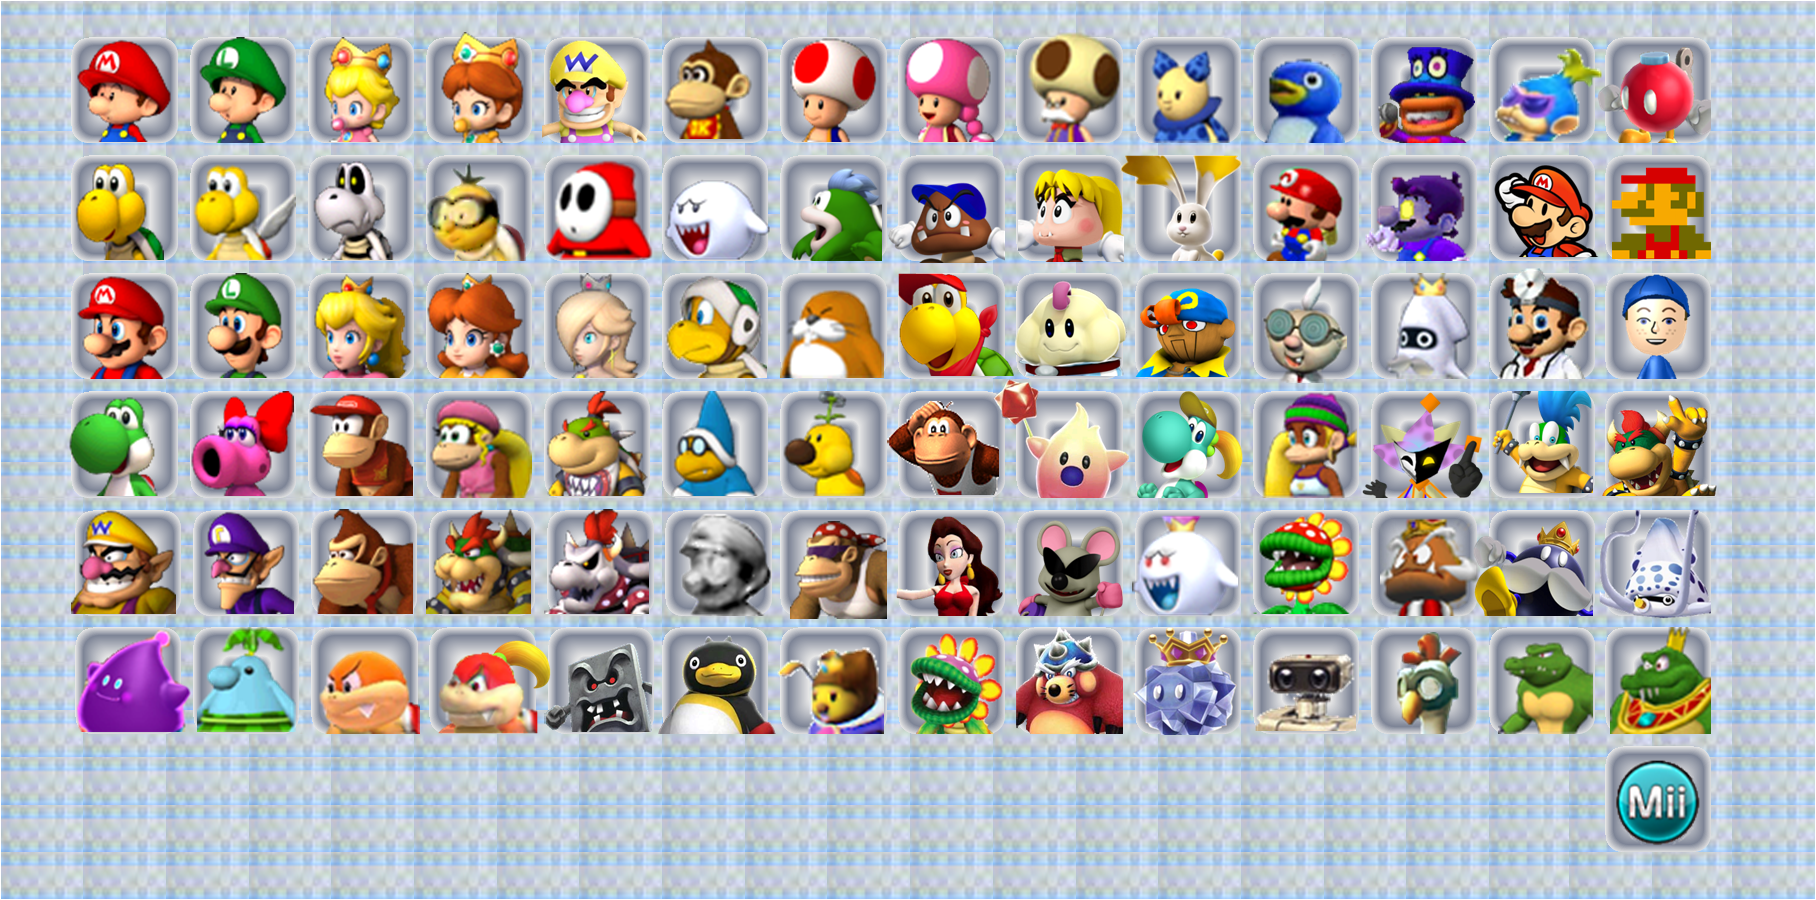 Pics Photos Mario Kart Wii Character Roster Ideas Pictures